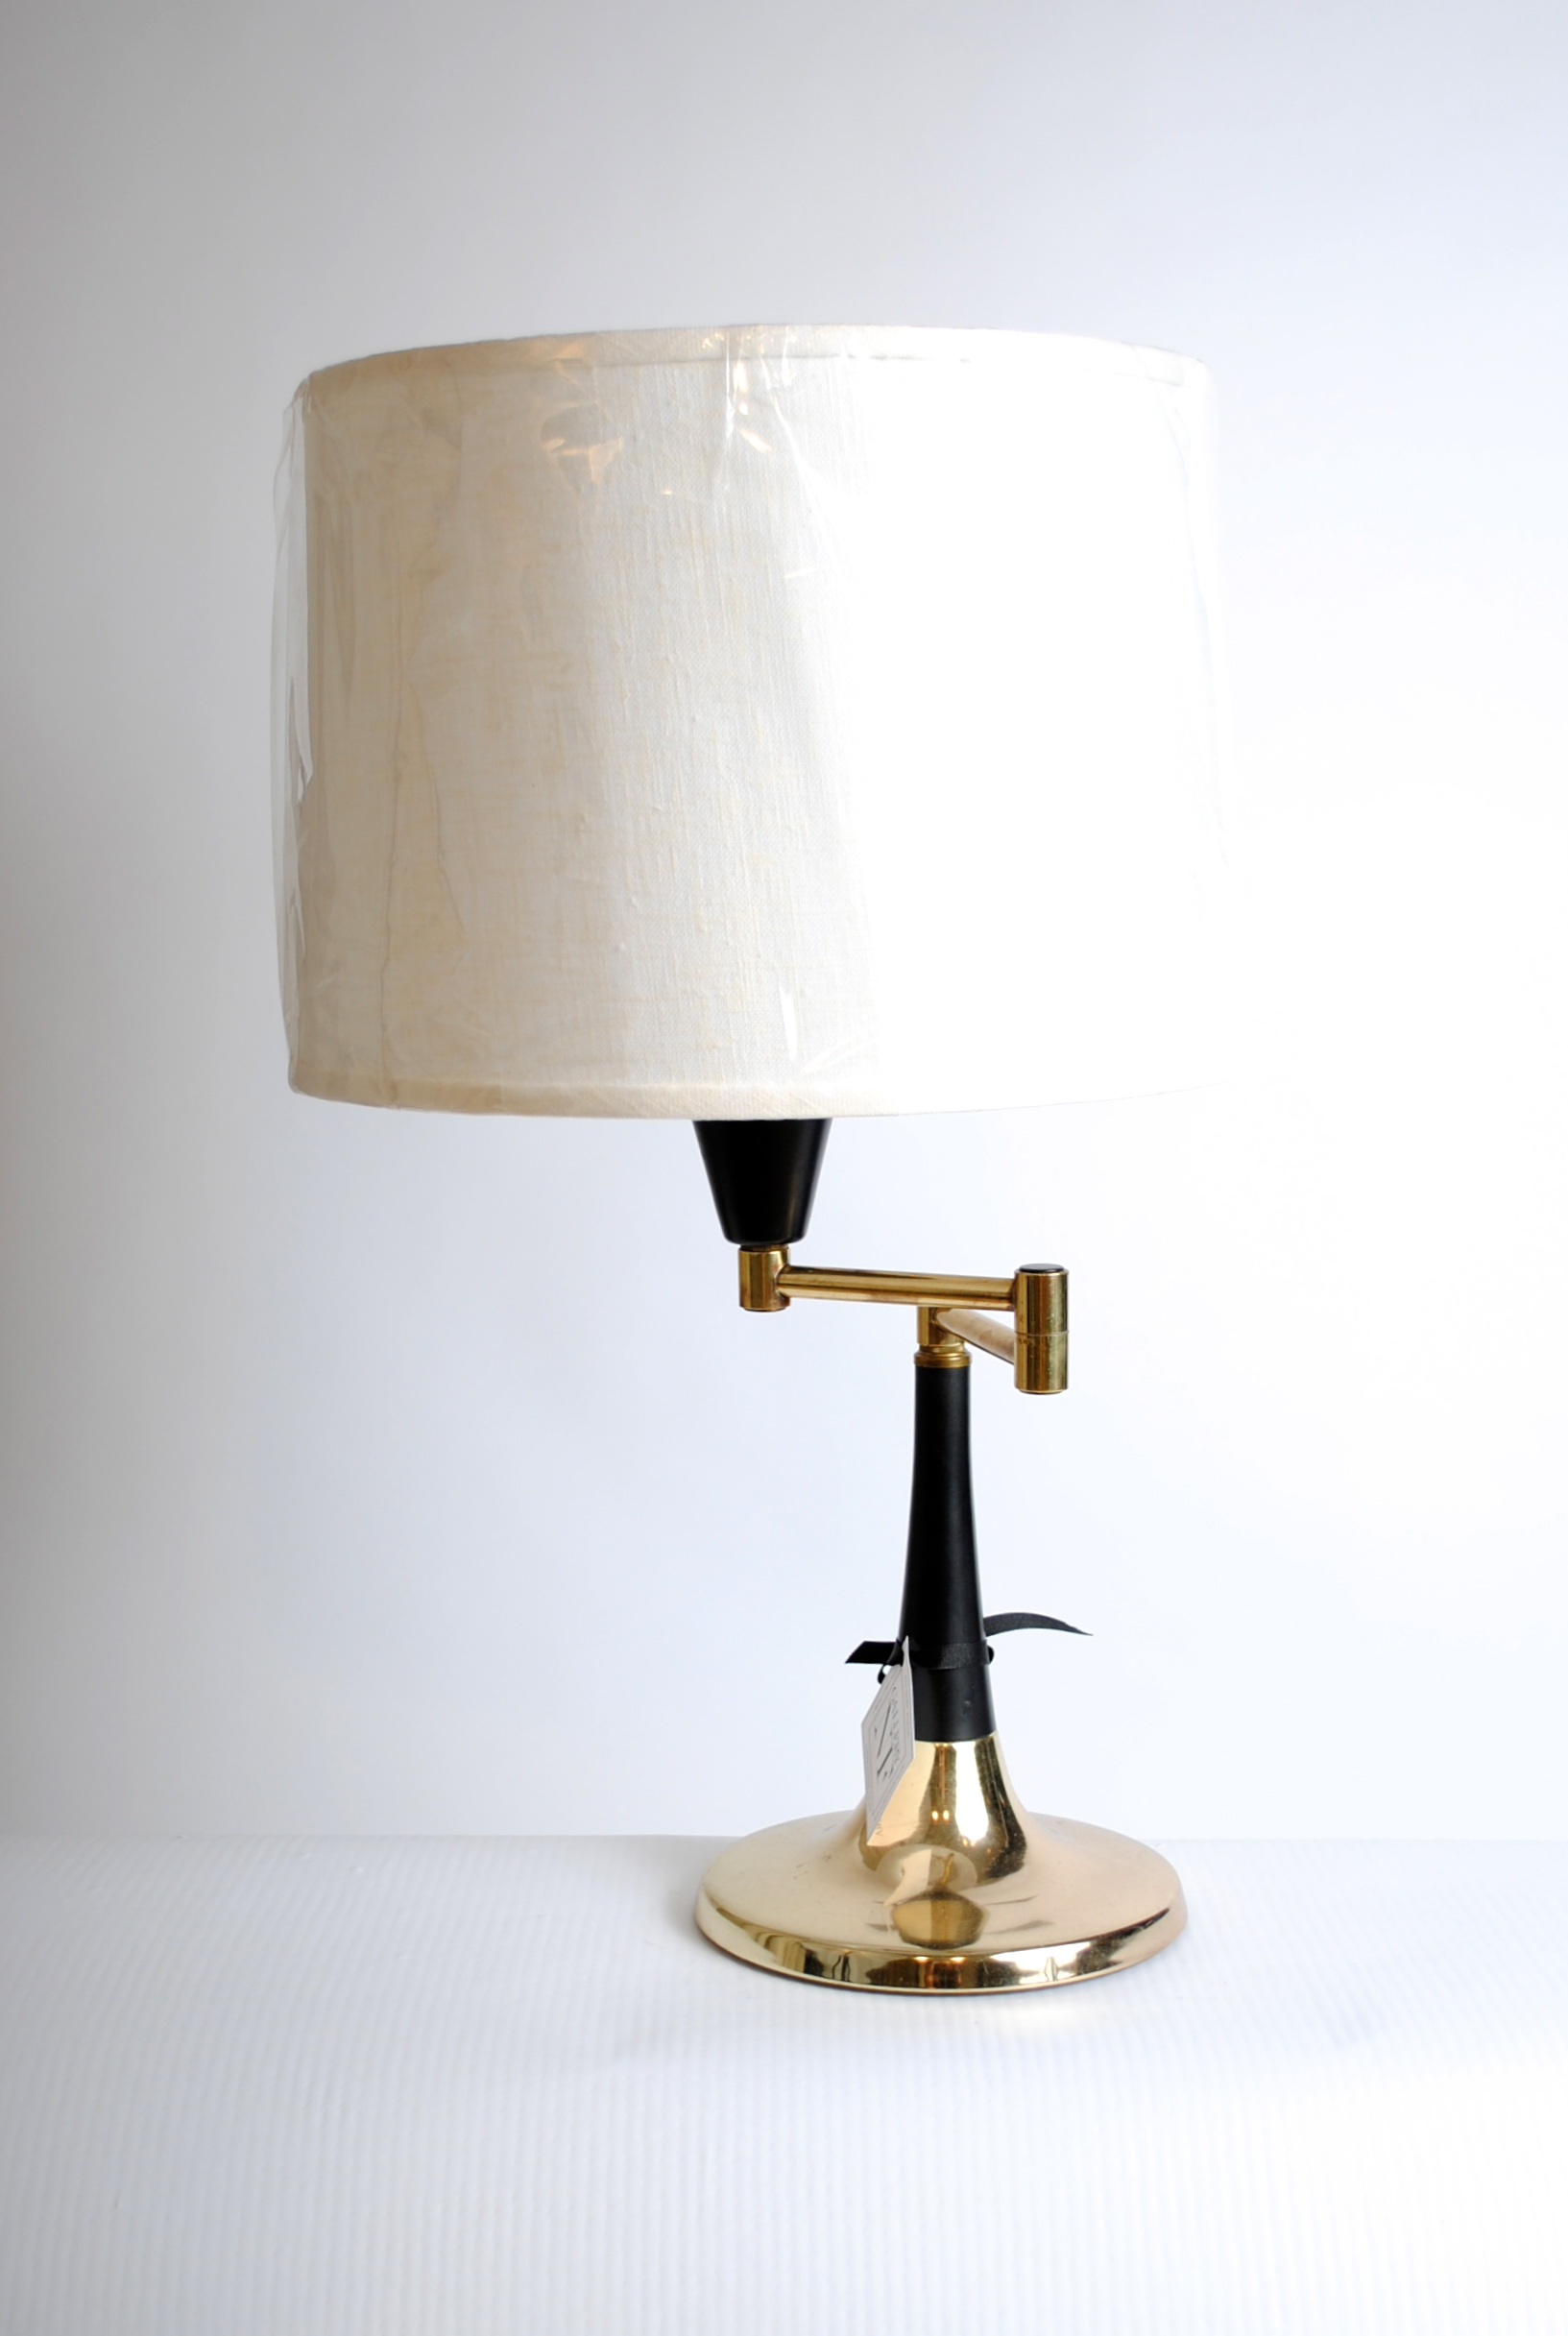 Vintage Black/Brass Reading Lamp